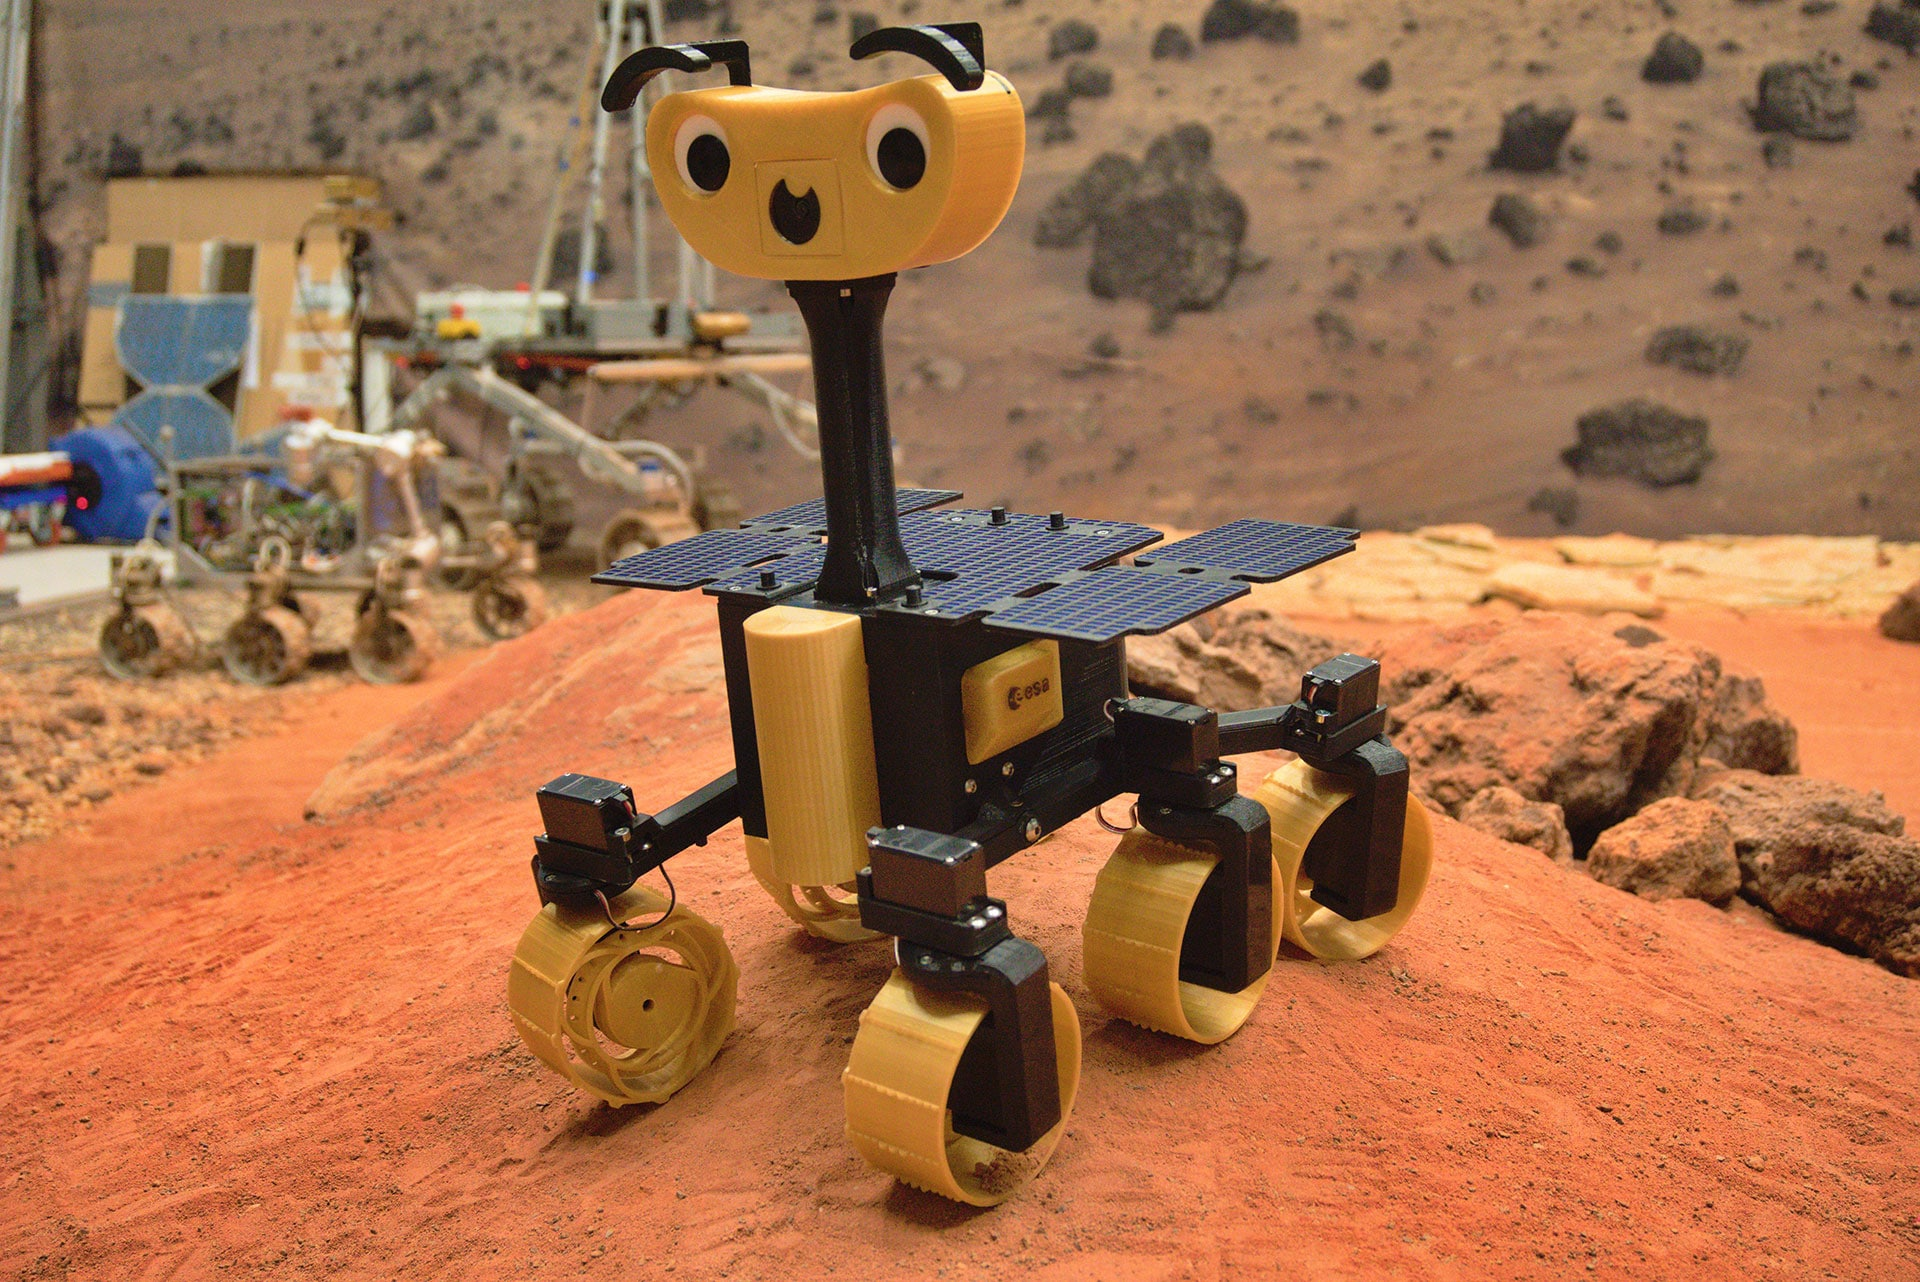 ESA presents ExoMy rover that anyone can 3D print, assemble and program - Inceptive Mind